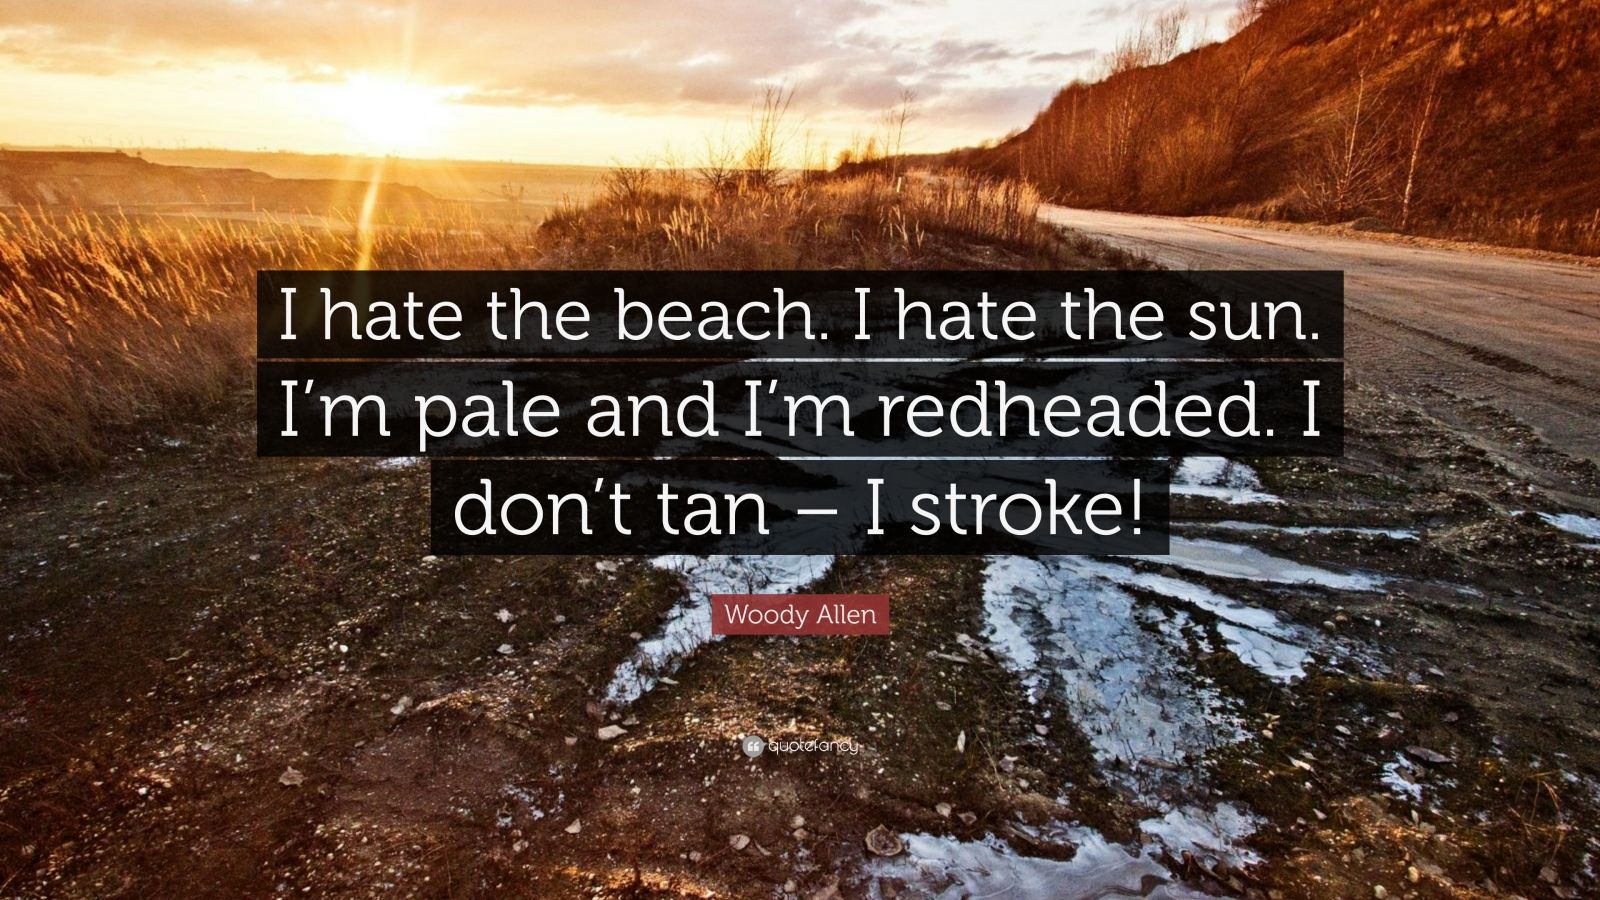 """Woody Allen Quote: """"I hate the beach. I hate the sun. I'm pale and I'm redheaded. I don't tan – I stroke!"""""""